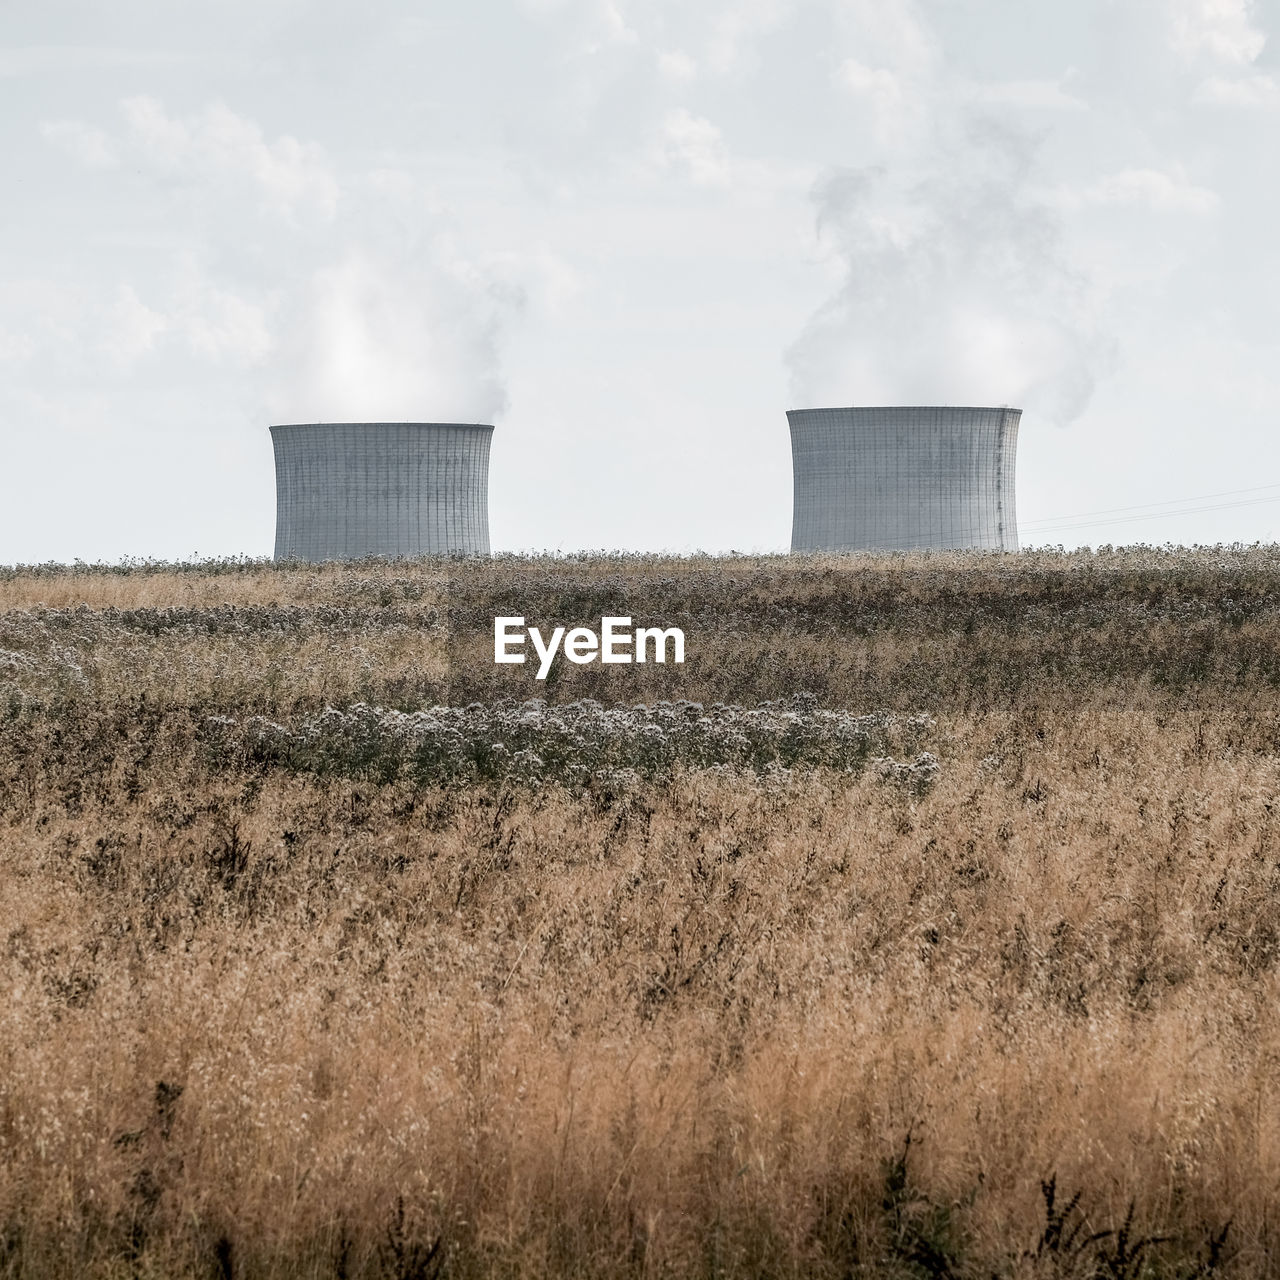 Cooling towers on grassy landscape against sky